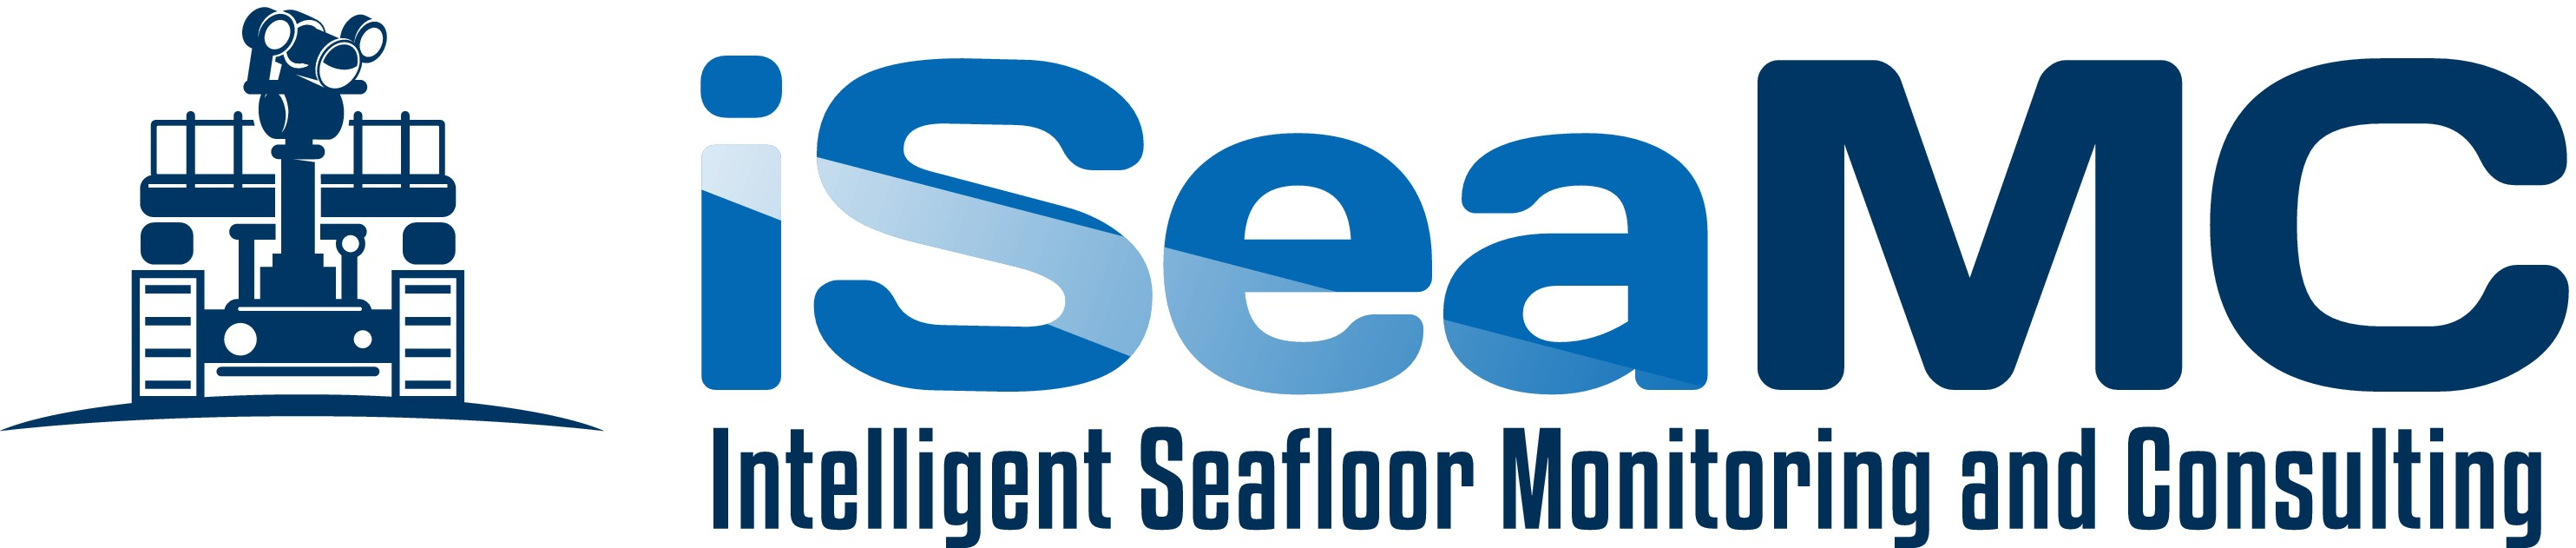 Create a capturing logo for a small company which uses a robot for sophisticated seafloor monitoring